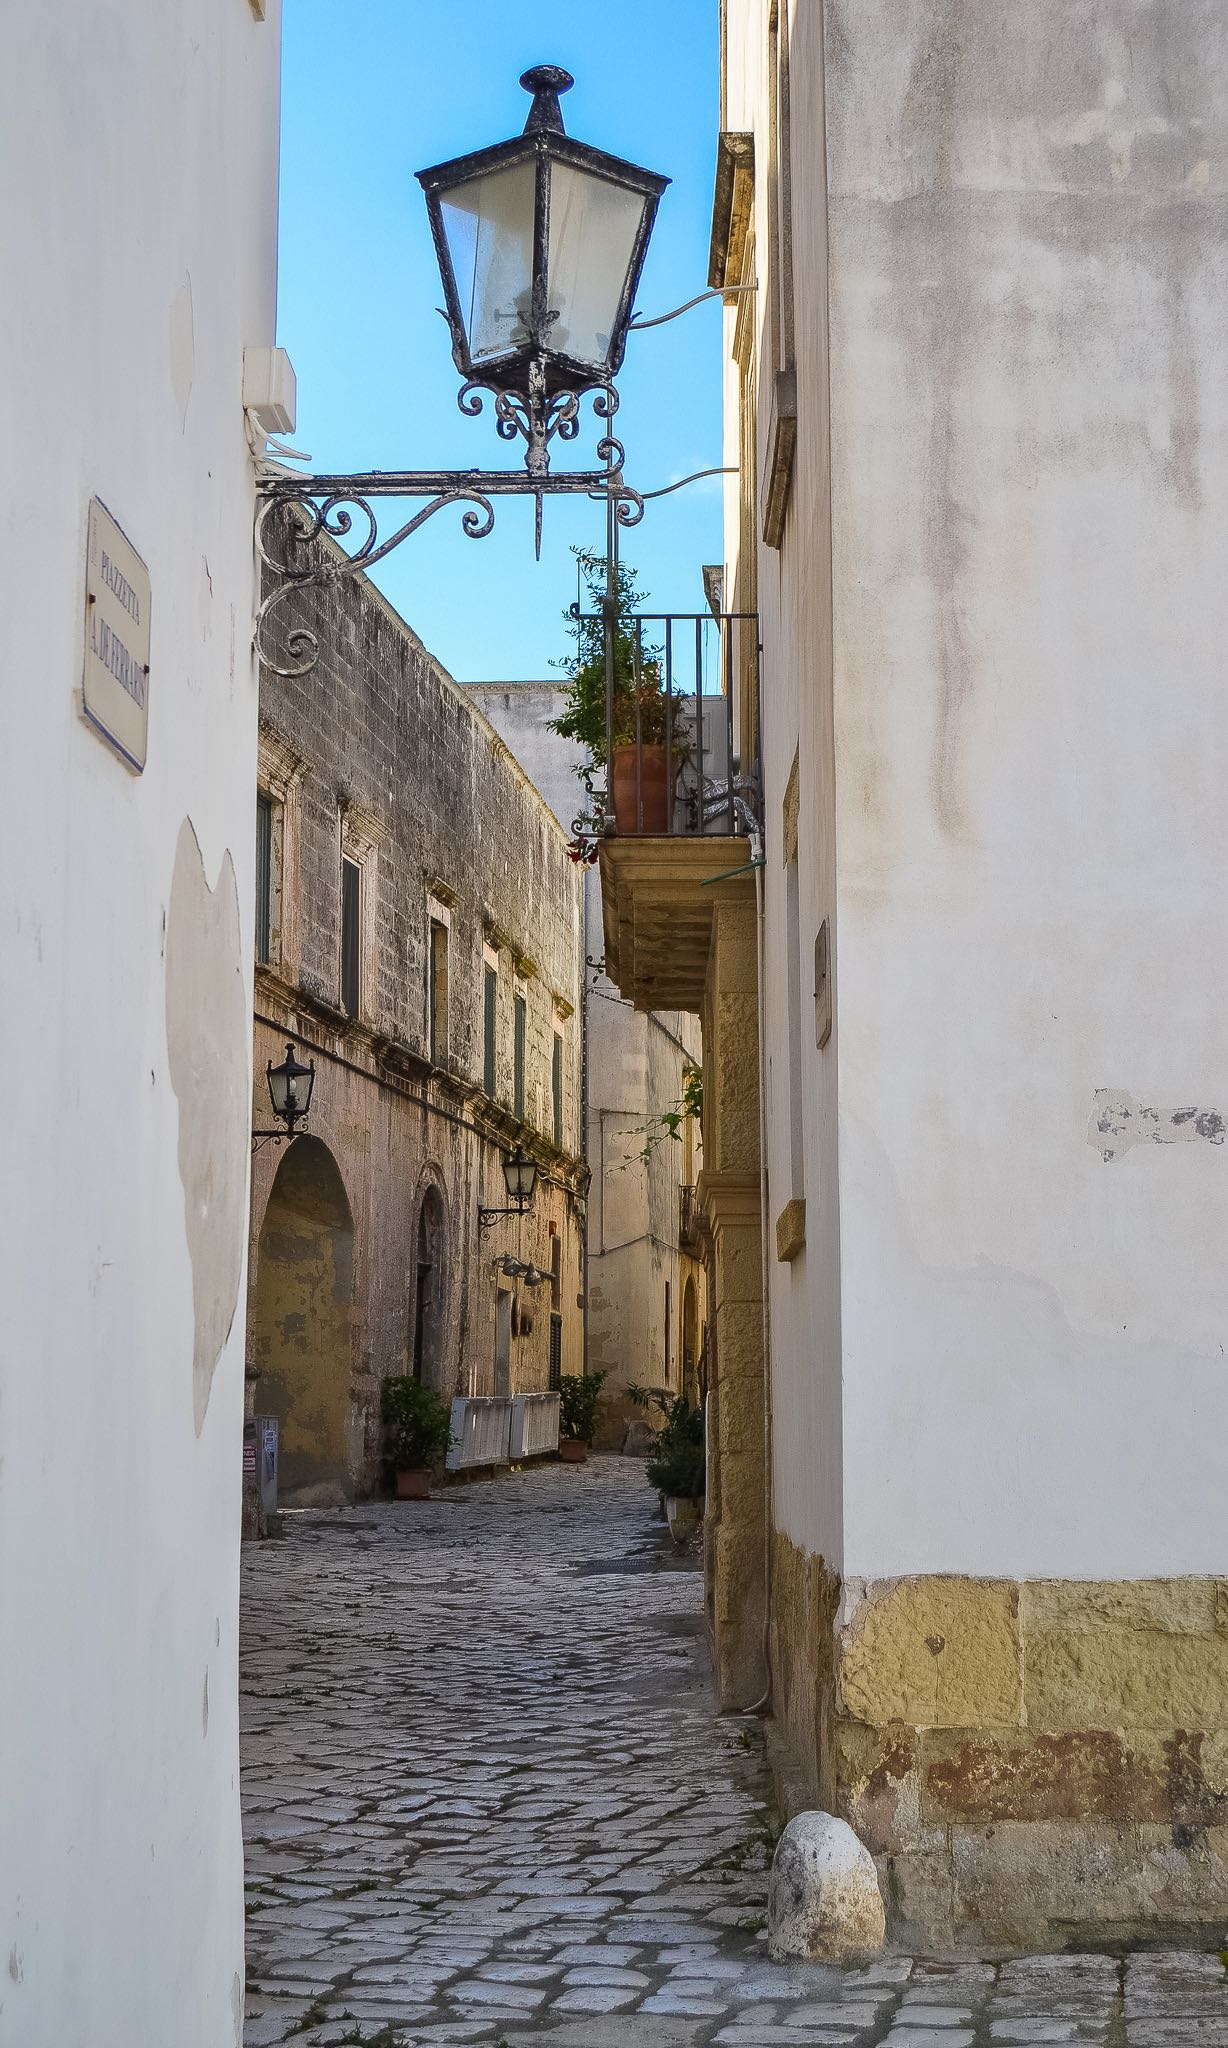 a quaint alley in Otranto, a beautiful coastal town in Puglia's Salento region